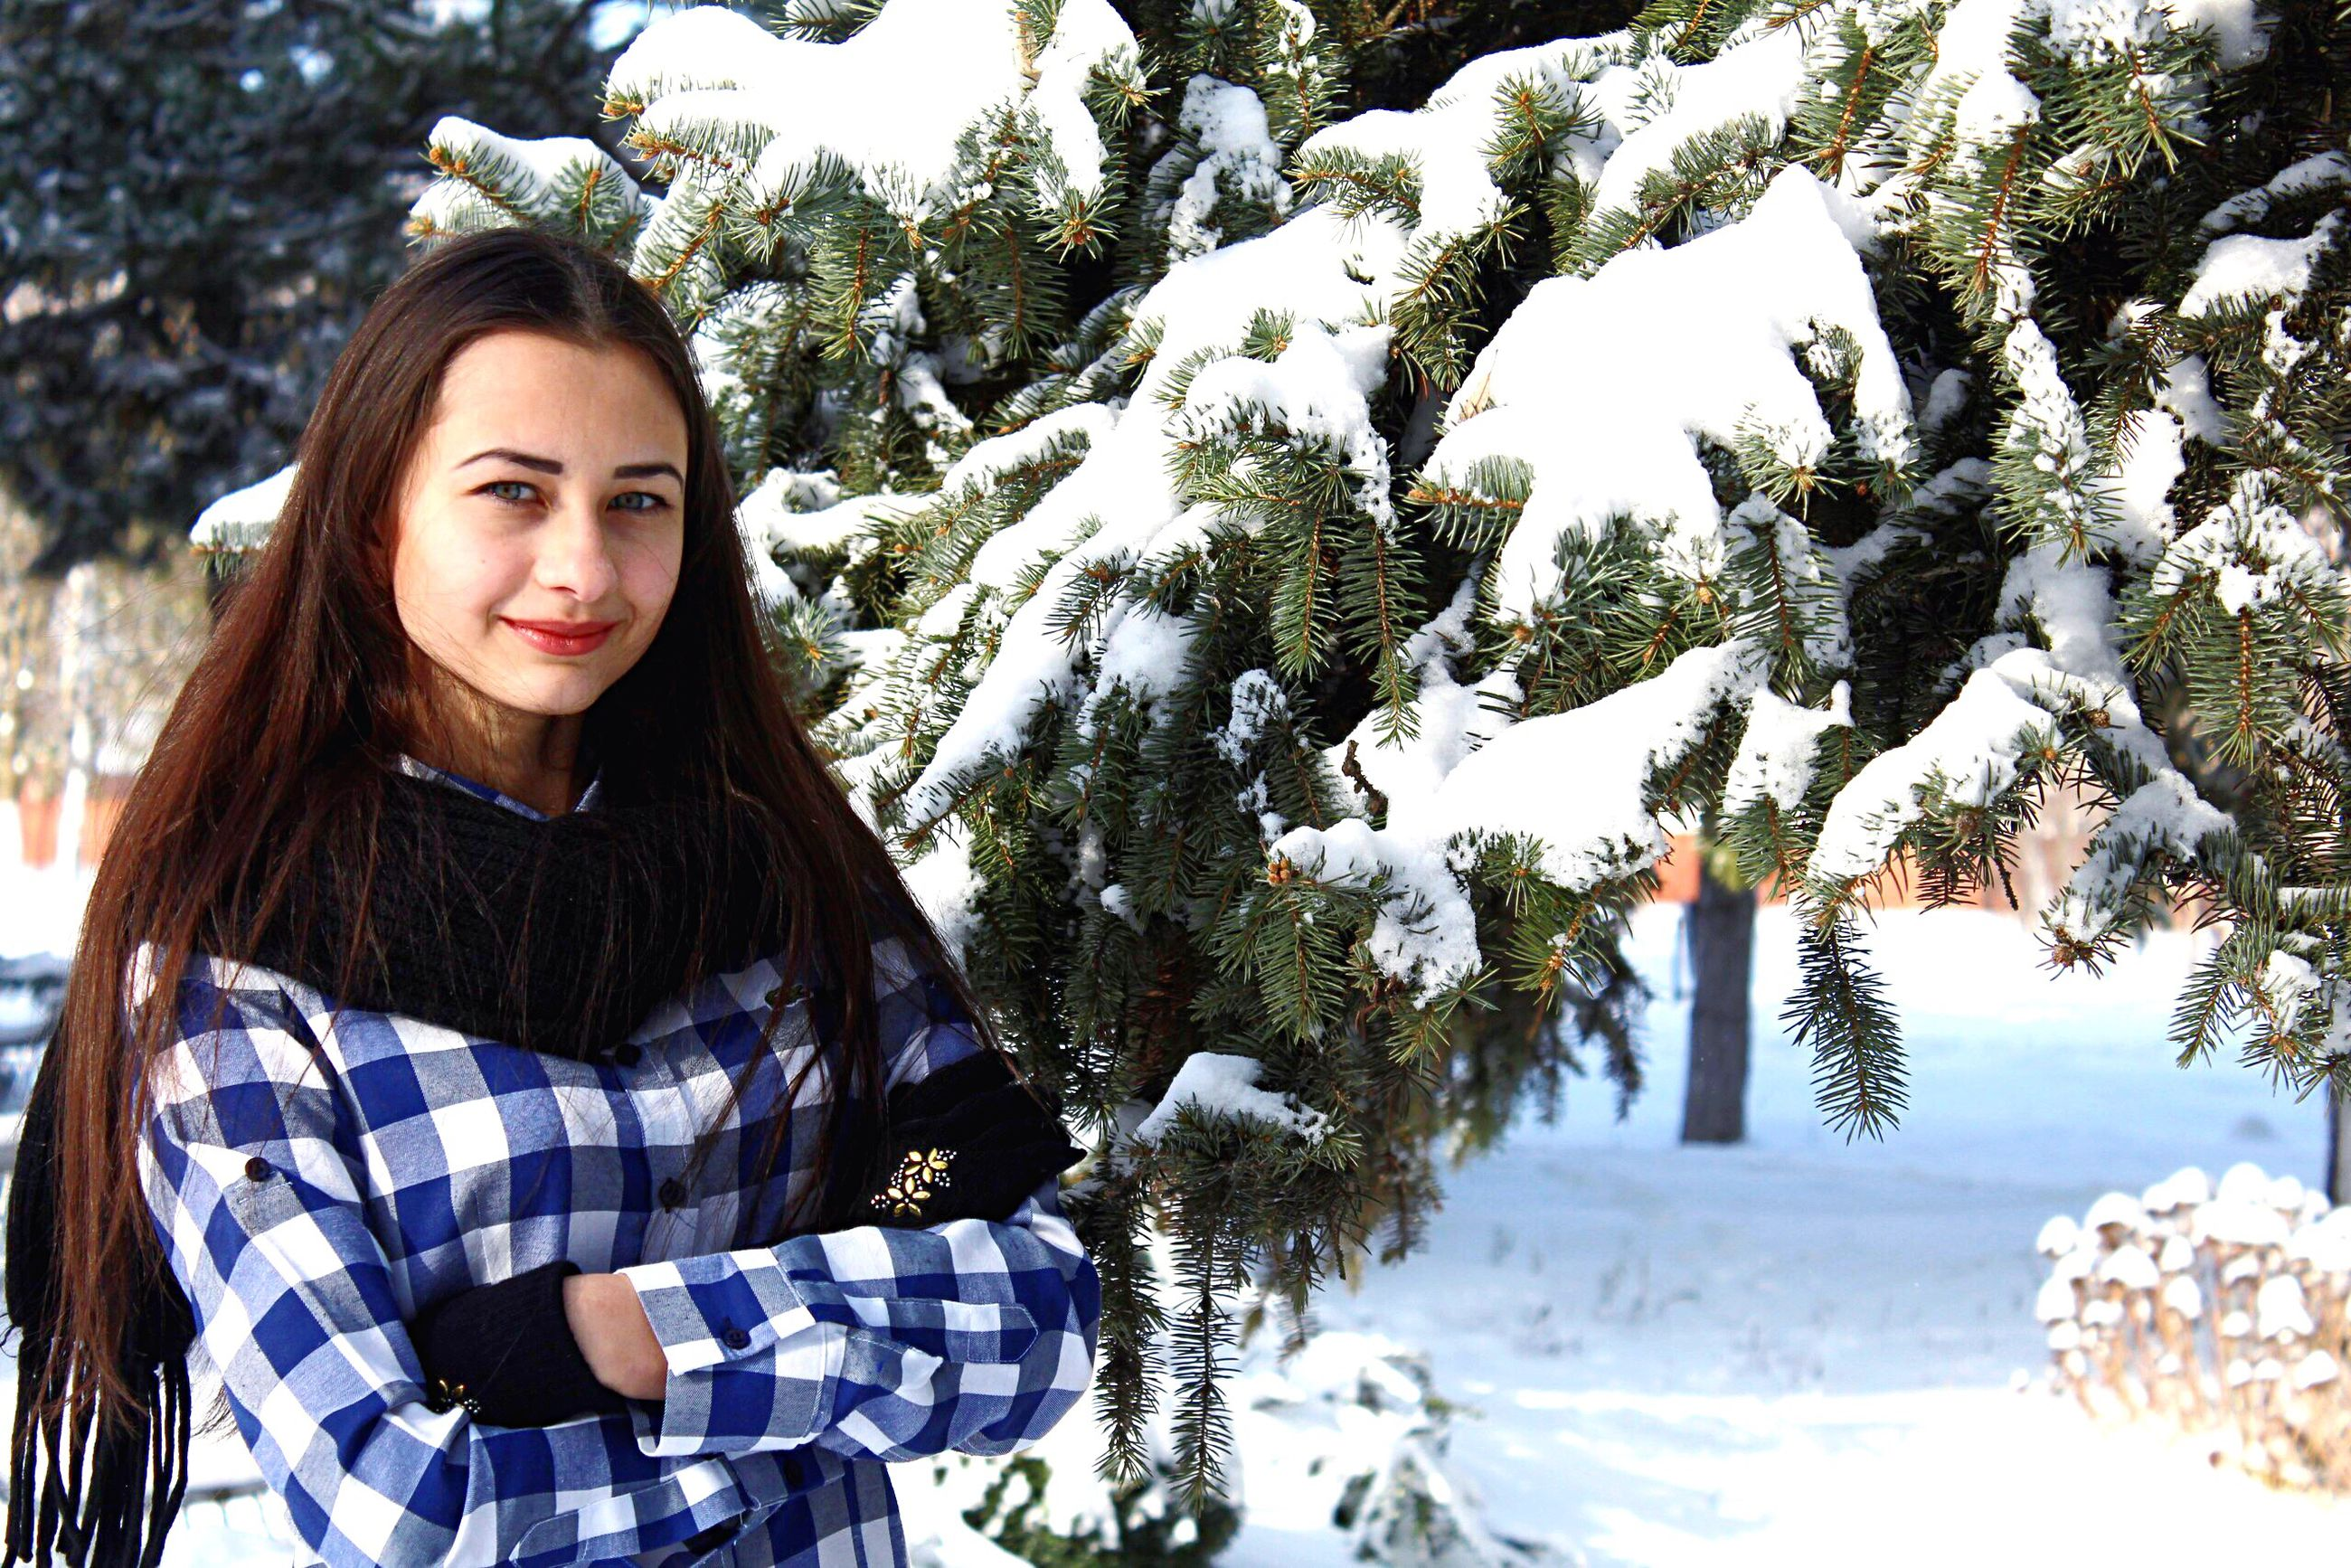 lifestyles, portrait, looking at camera, leisure activity, young adult, person, smiling, young women, winter, snow, cold temperature, casual clothing, front view, happiness, toothy smile, warm clothing, season, waist up